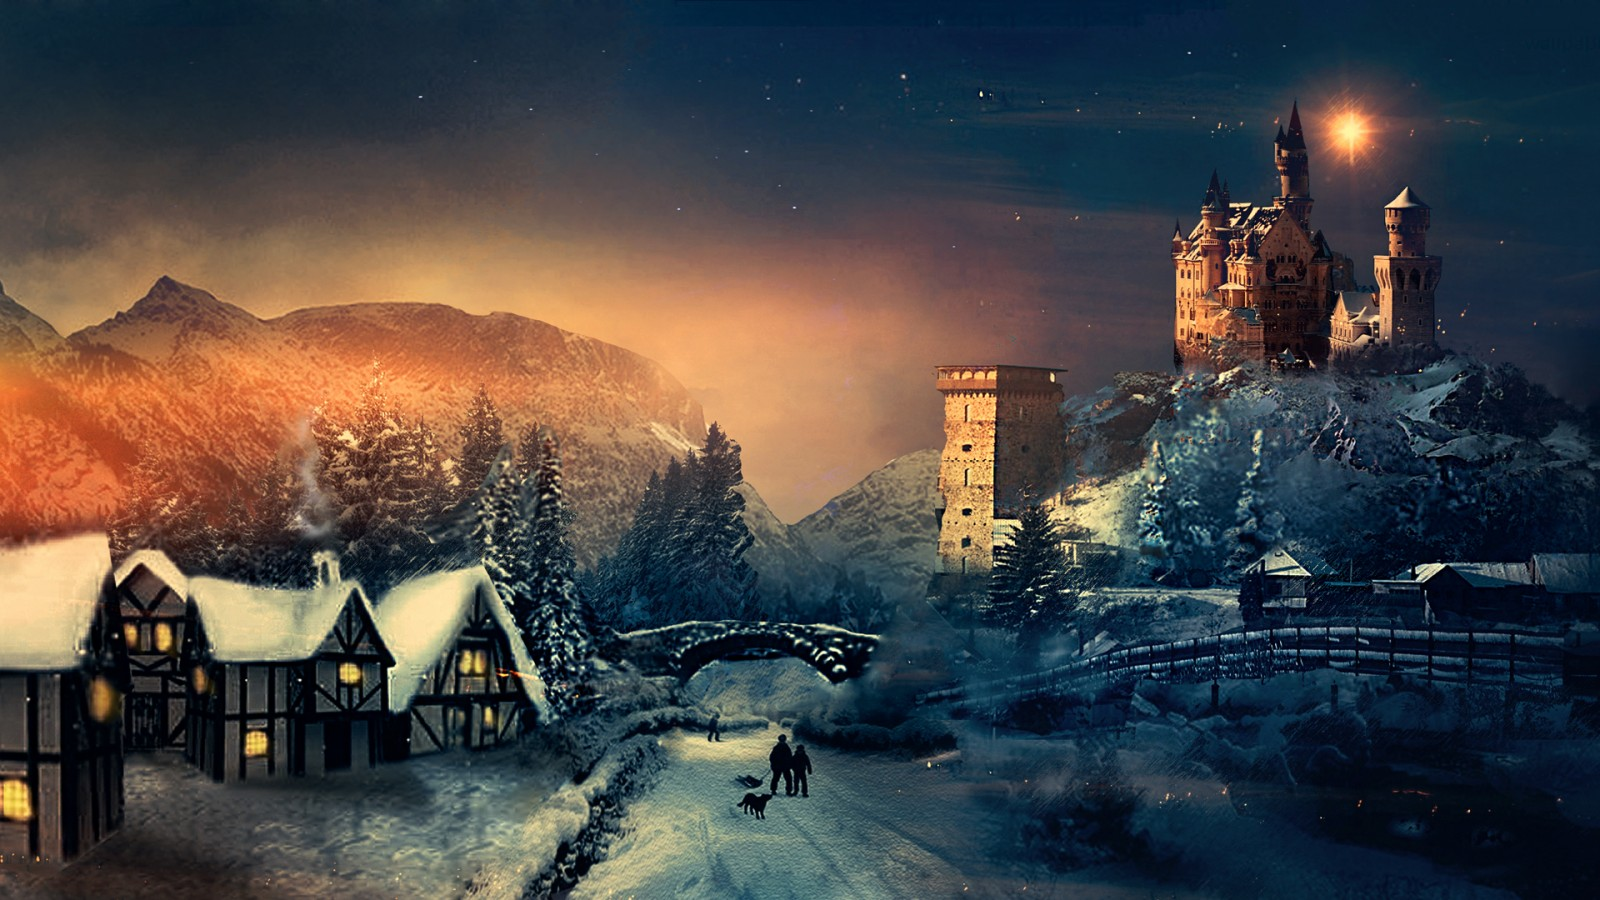 Merry Christmas 3d Wallpaper Hd Christmas Winter Wallpapers Hd Wallpapers Id 14153